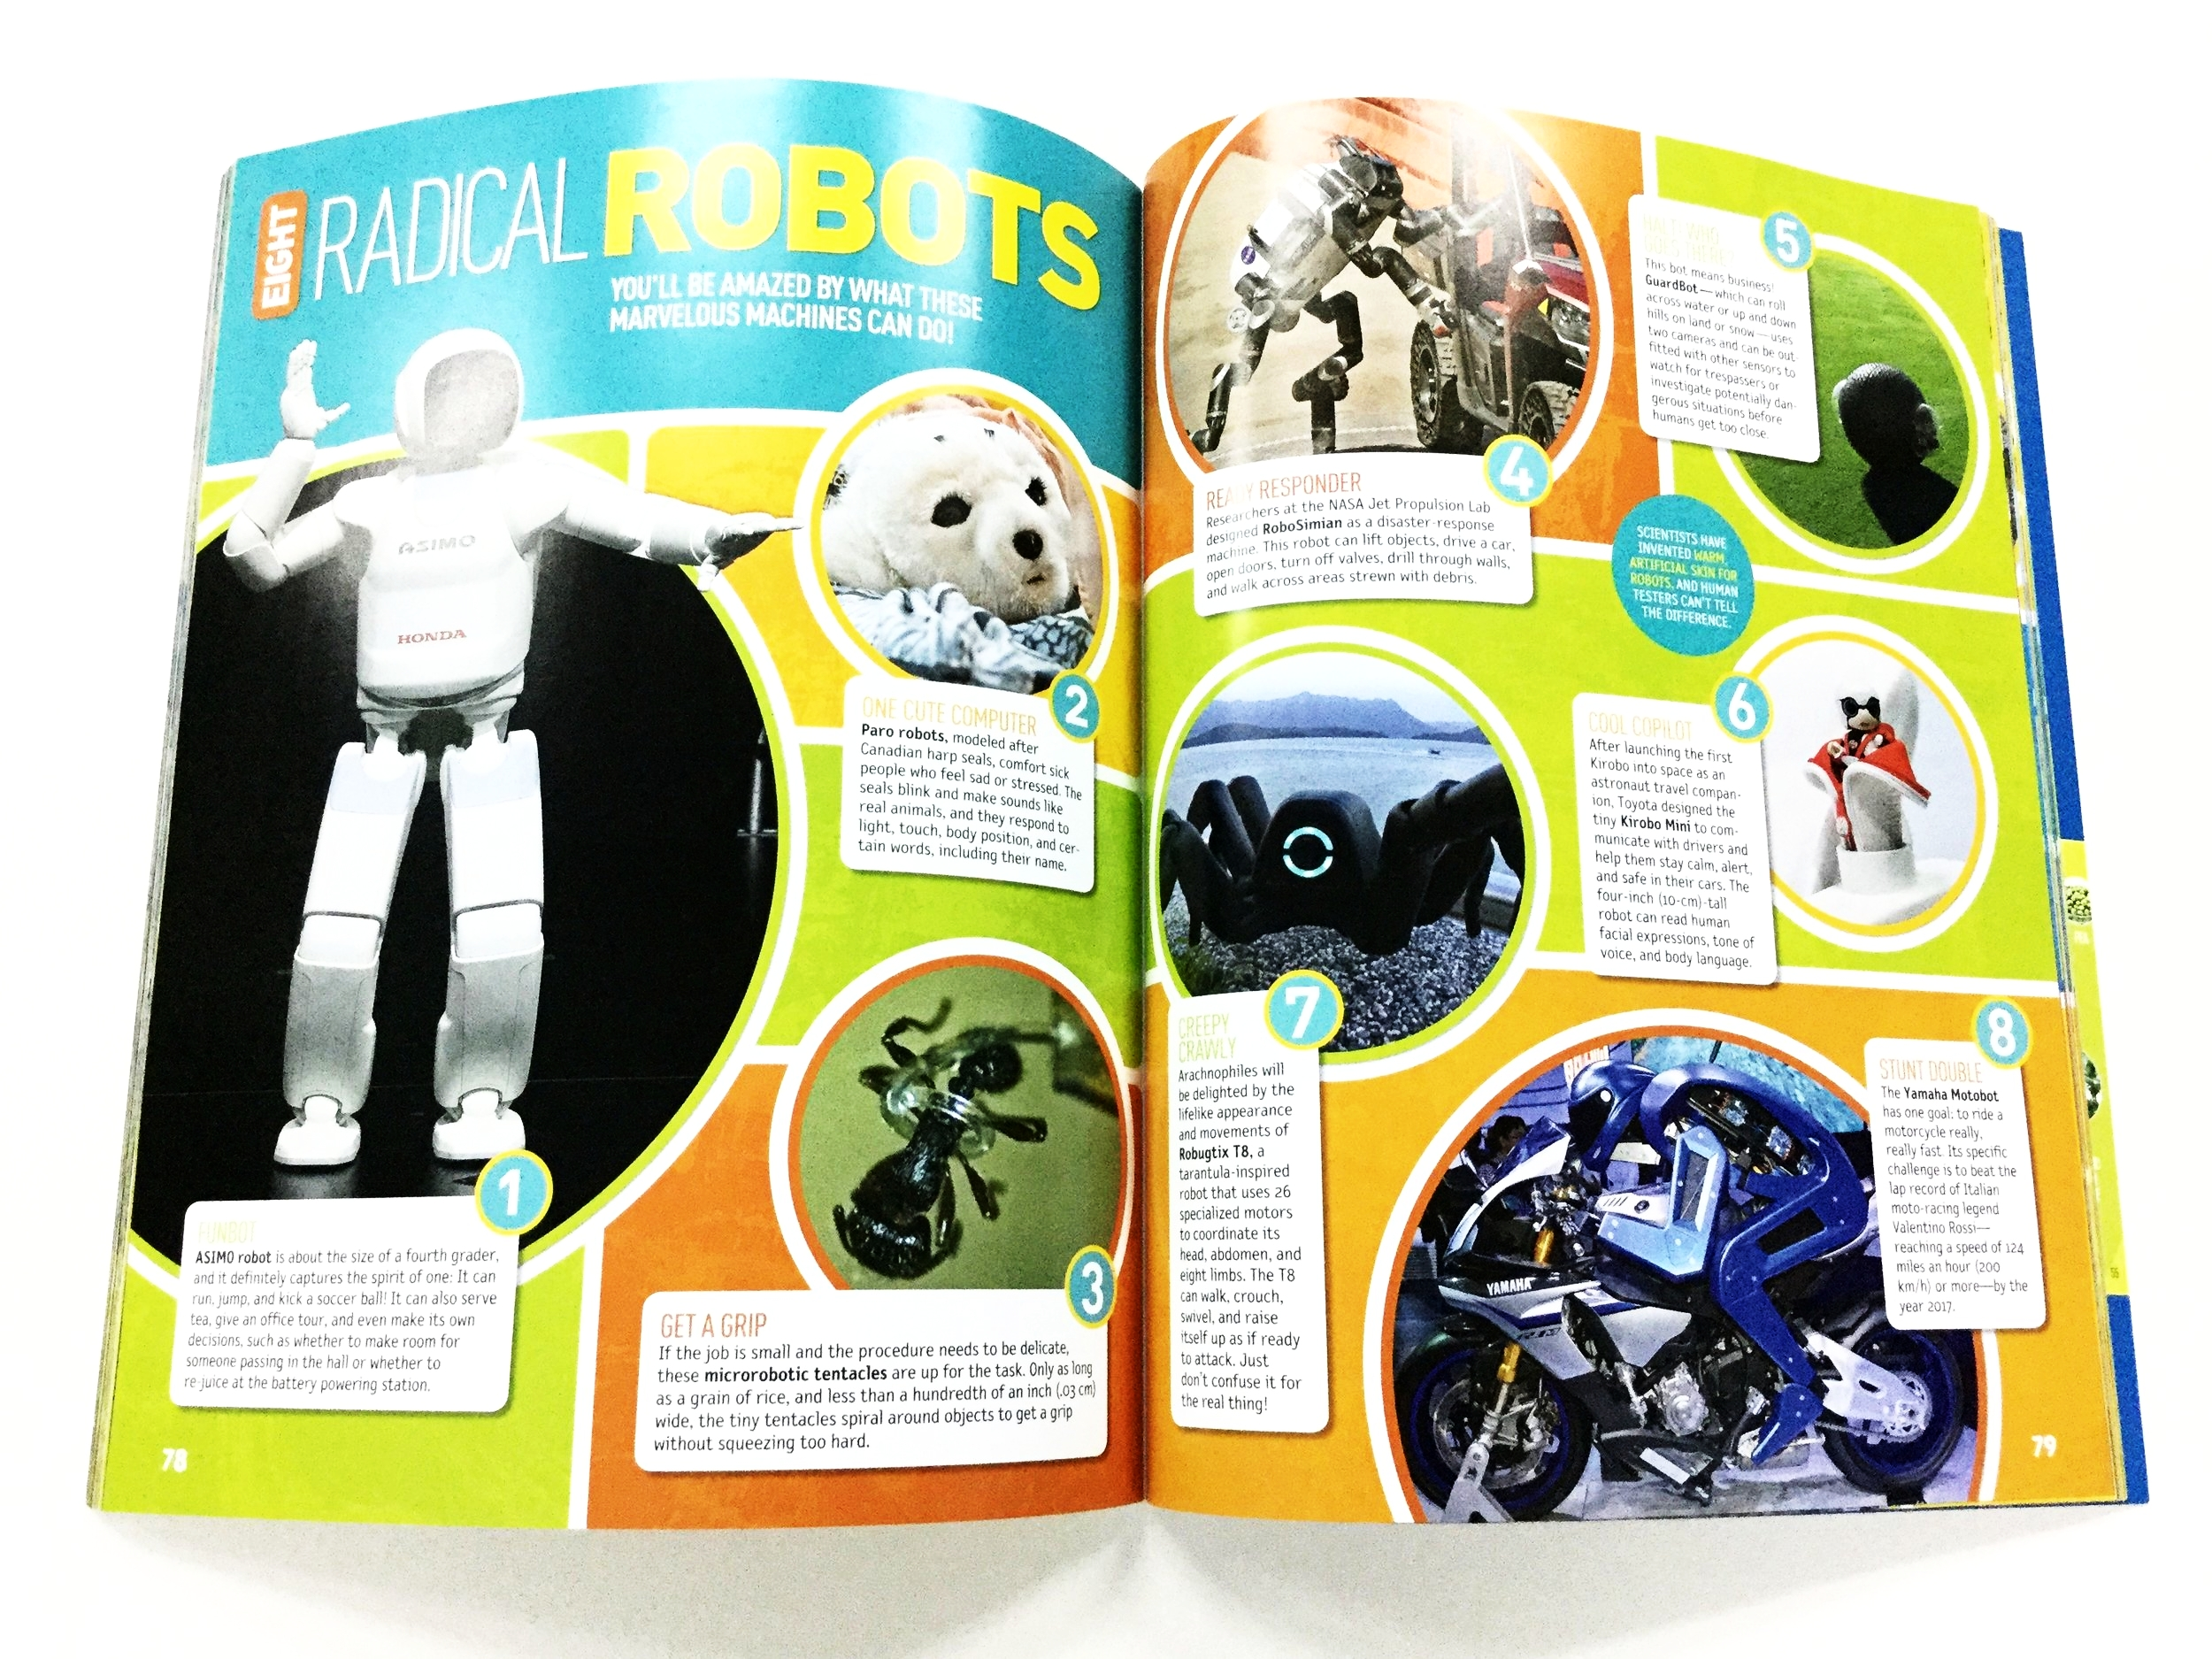 Awesome 8 Extreme (p.79) - The T8X inspiring future generations of roboticists